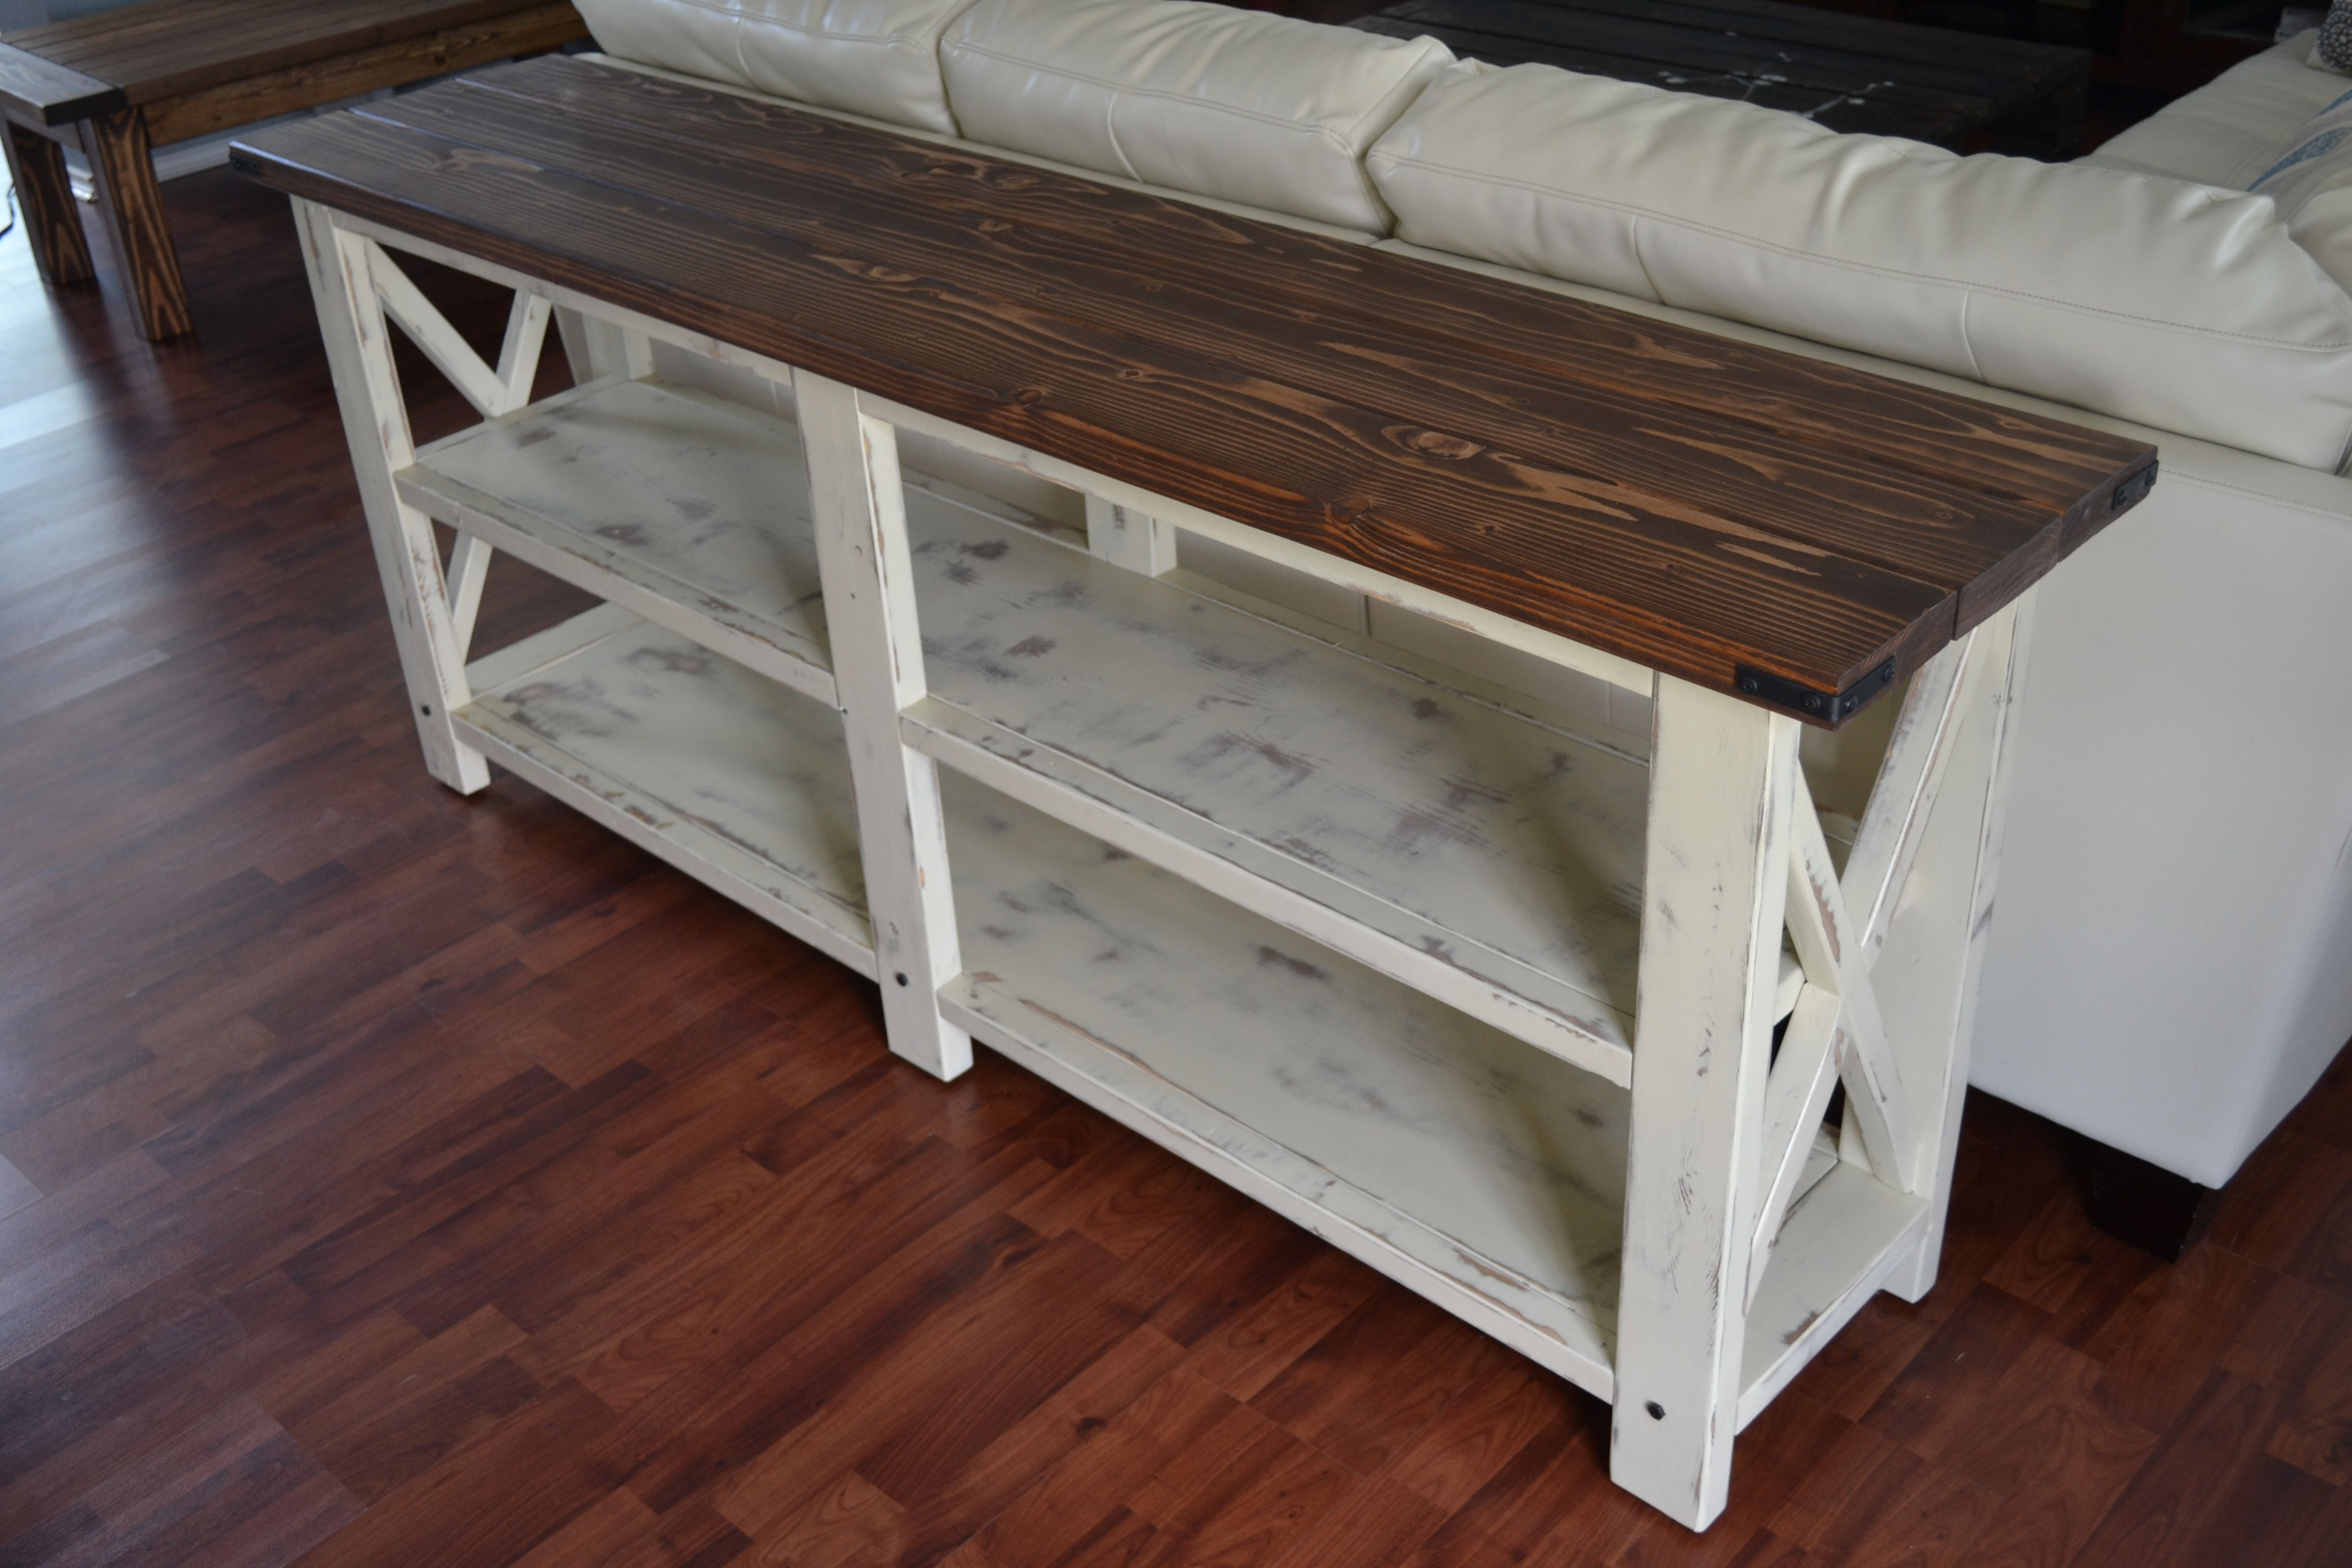 Console Table Do It Yourself Home Projects From Ana White Diy